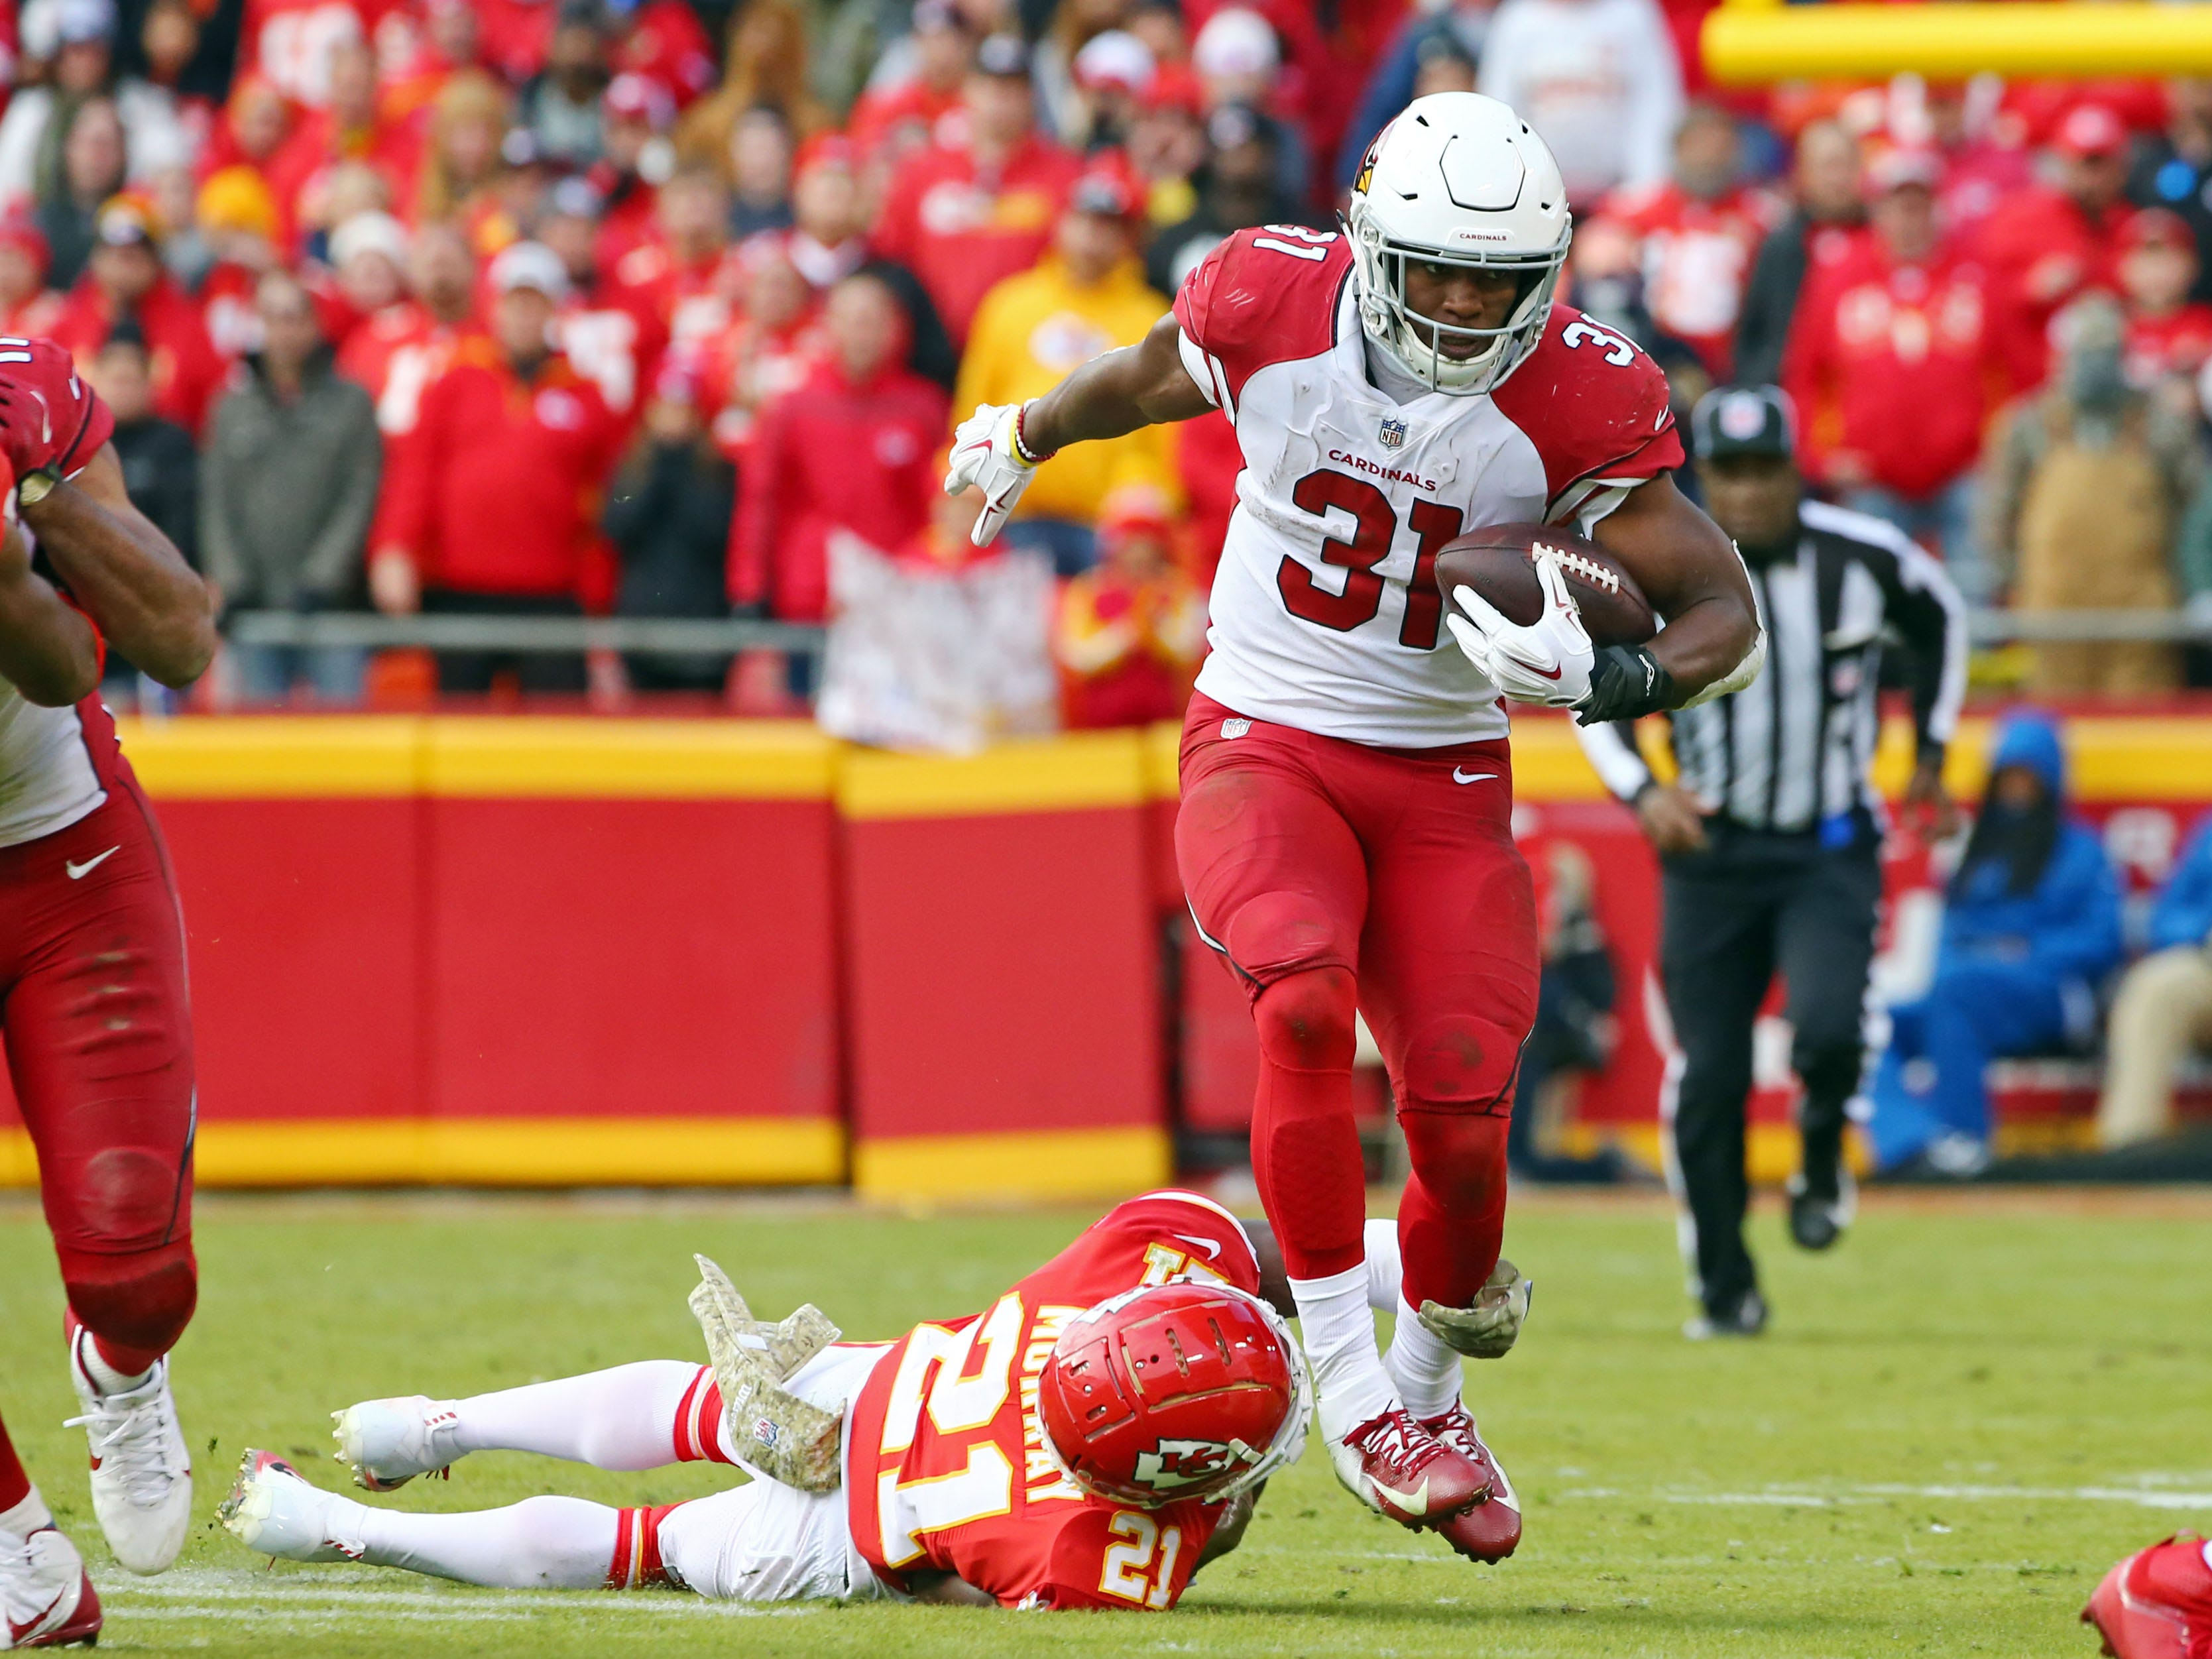 Nov 11, 2018; Kansas City, MO, USA; Arizona Cardinals running back David Johnson (31) is tackled by Kansas City Chiefs cornerback Eric Murray (21) in the second half at Arrowhead Stadium. Mandatory Credit: Jay Biggerstaff-USA TODAY Sports